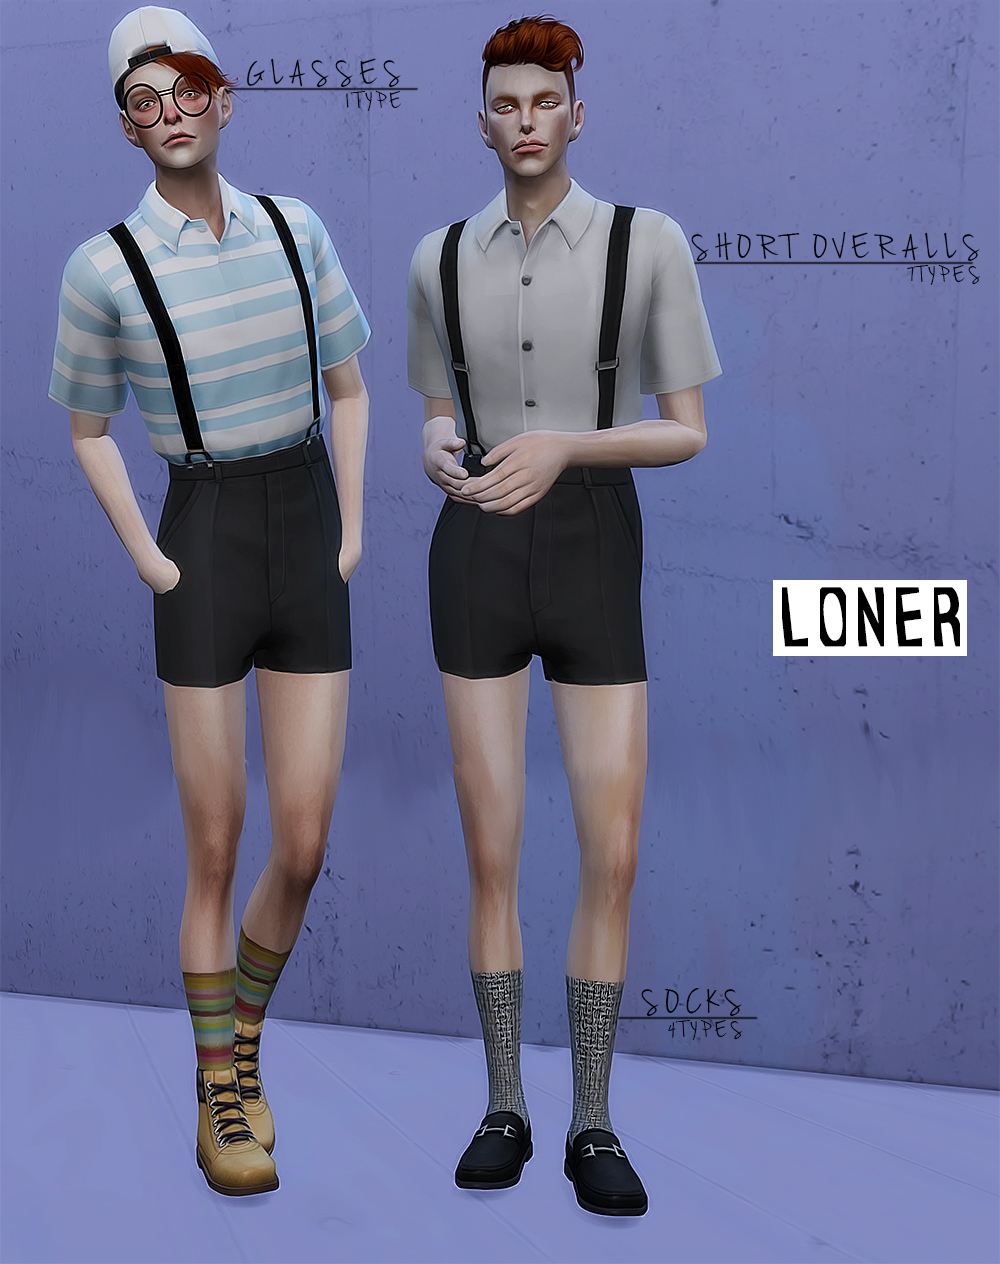 Loner short overalls / glasses / socks